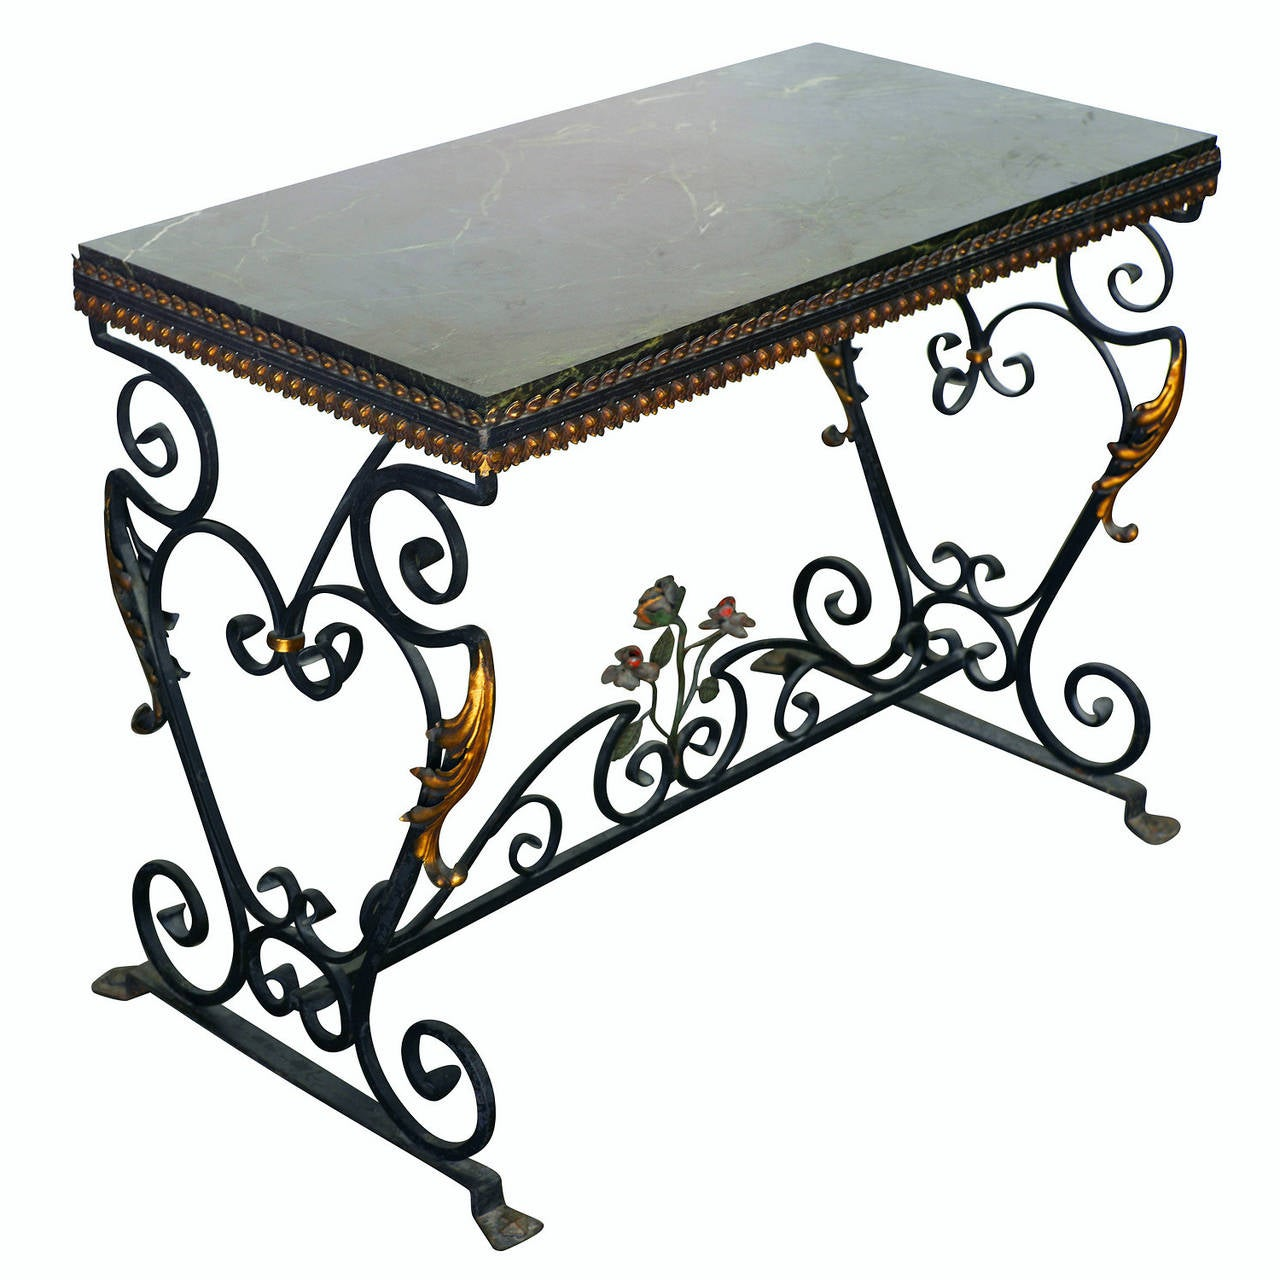 Ordinaire Italian Wrought Iron Console Table With St Laurent Marble Top For Sale